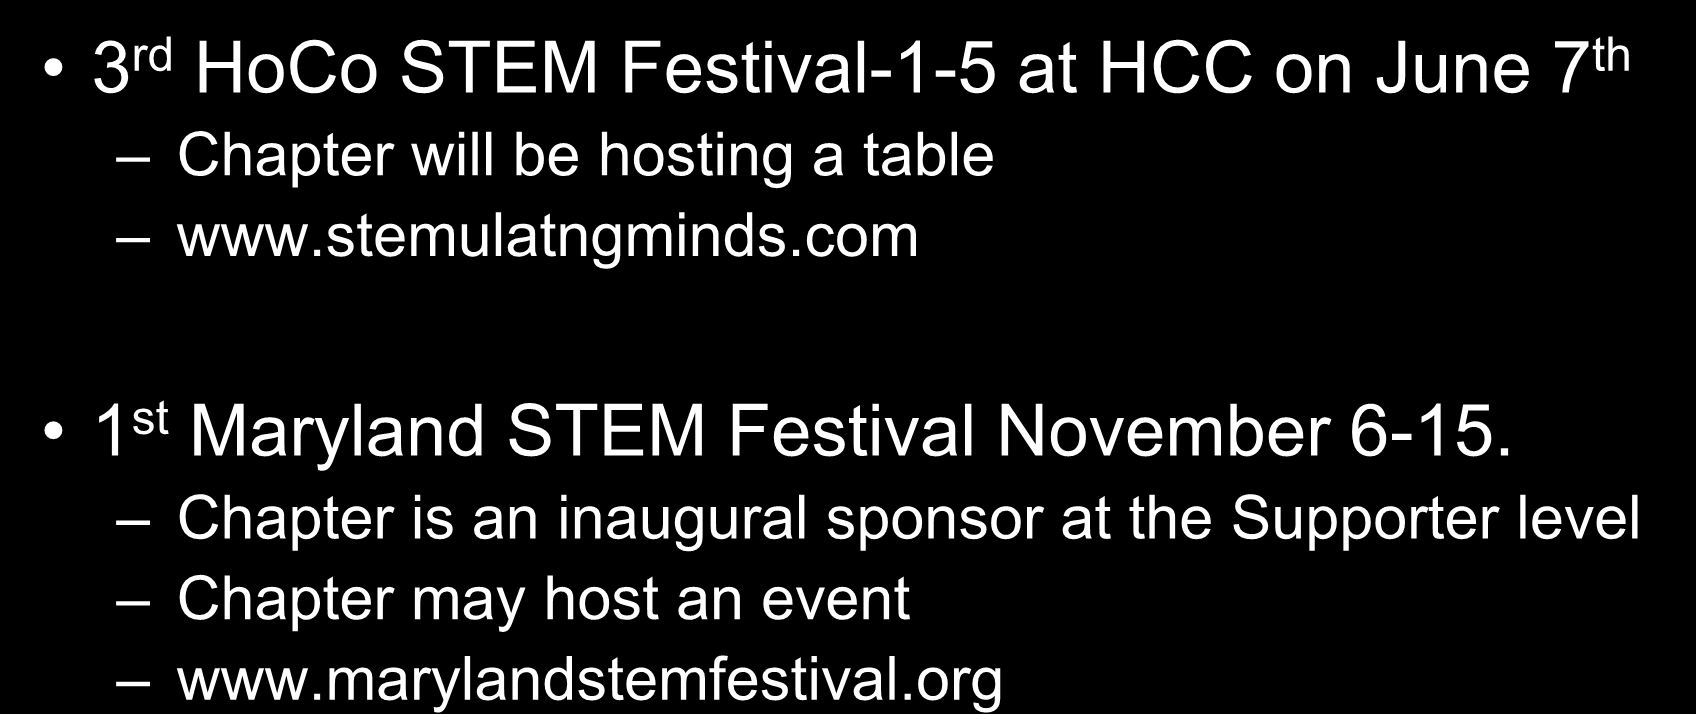 Chapter STEM Activities 3 rd HoCo STEM Festival-1-5 at HCC on June 7 th Chapter will be hosting a table www.stemulatngminds.